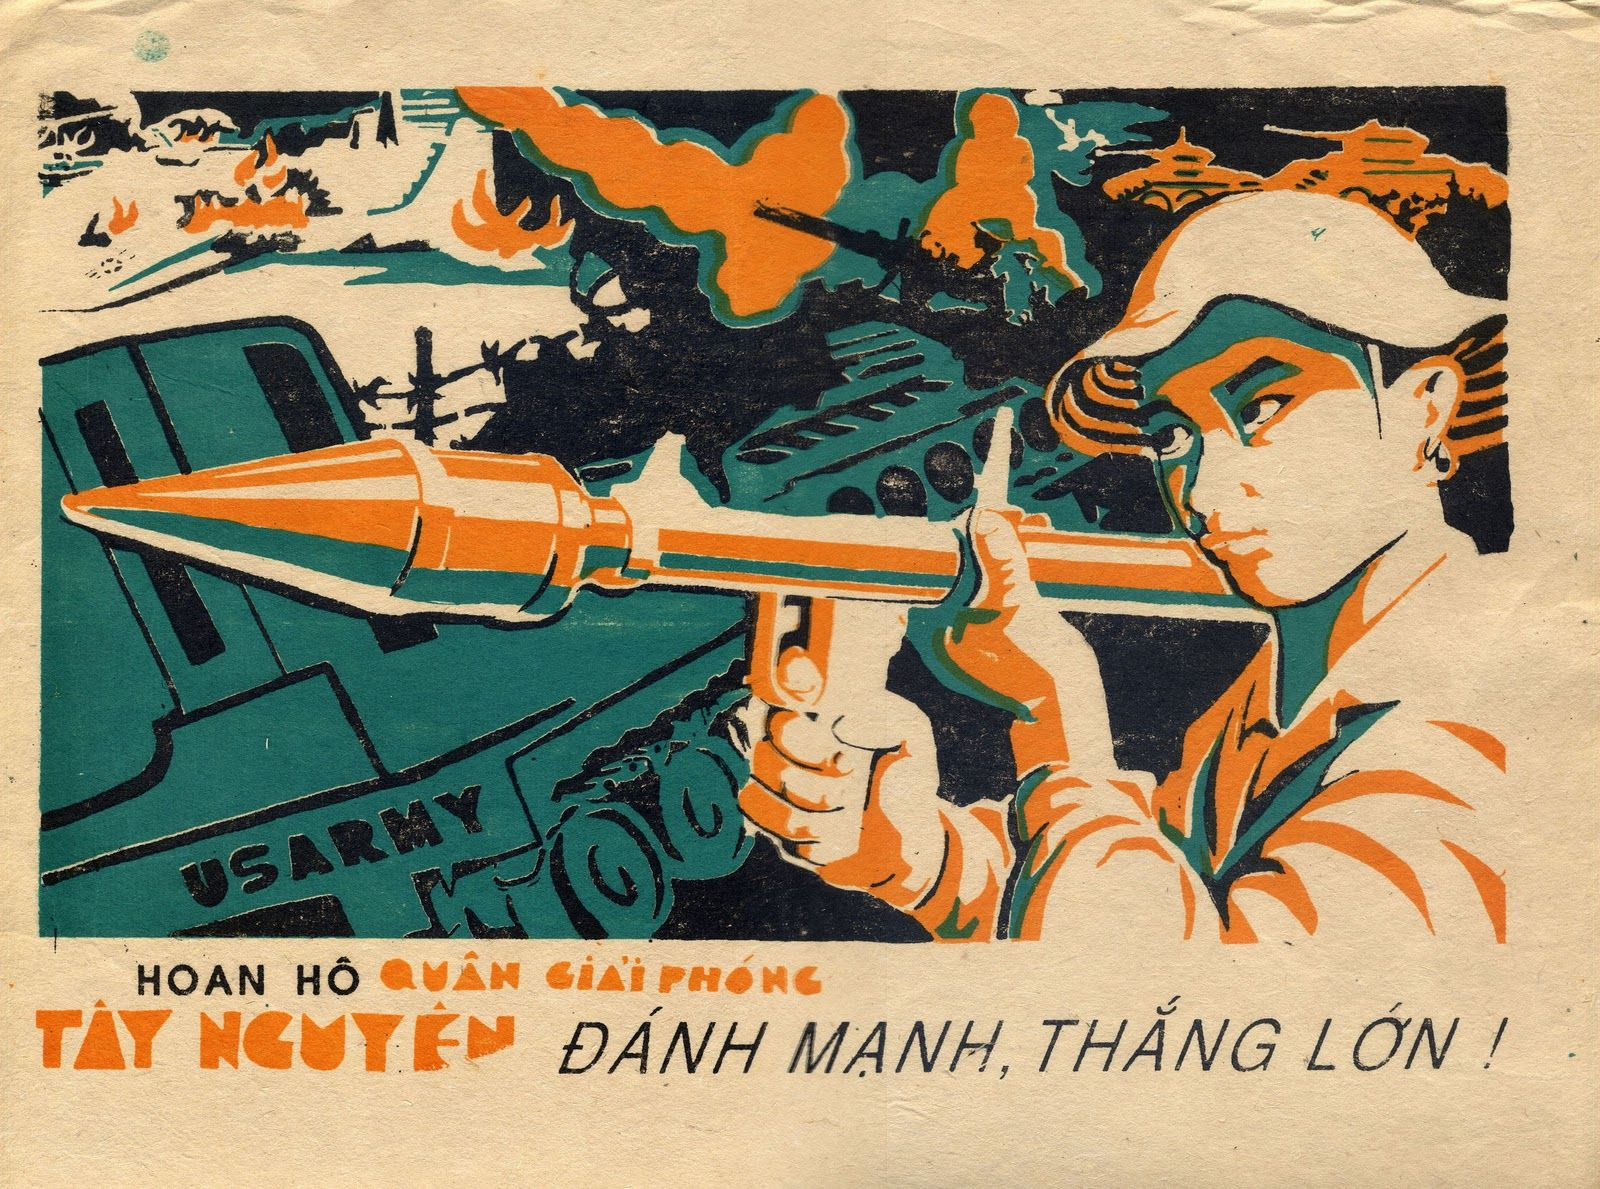 1000+ images about Propaganda Posters on Pinterest ...